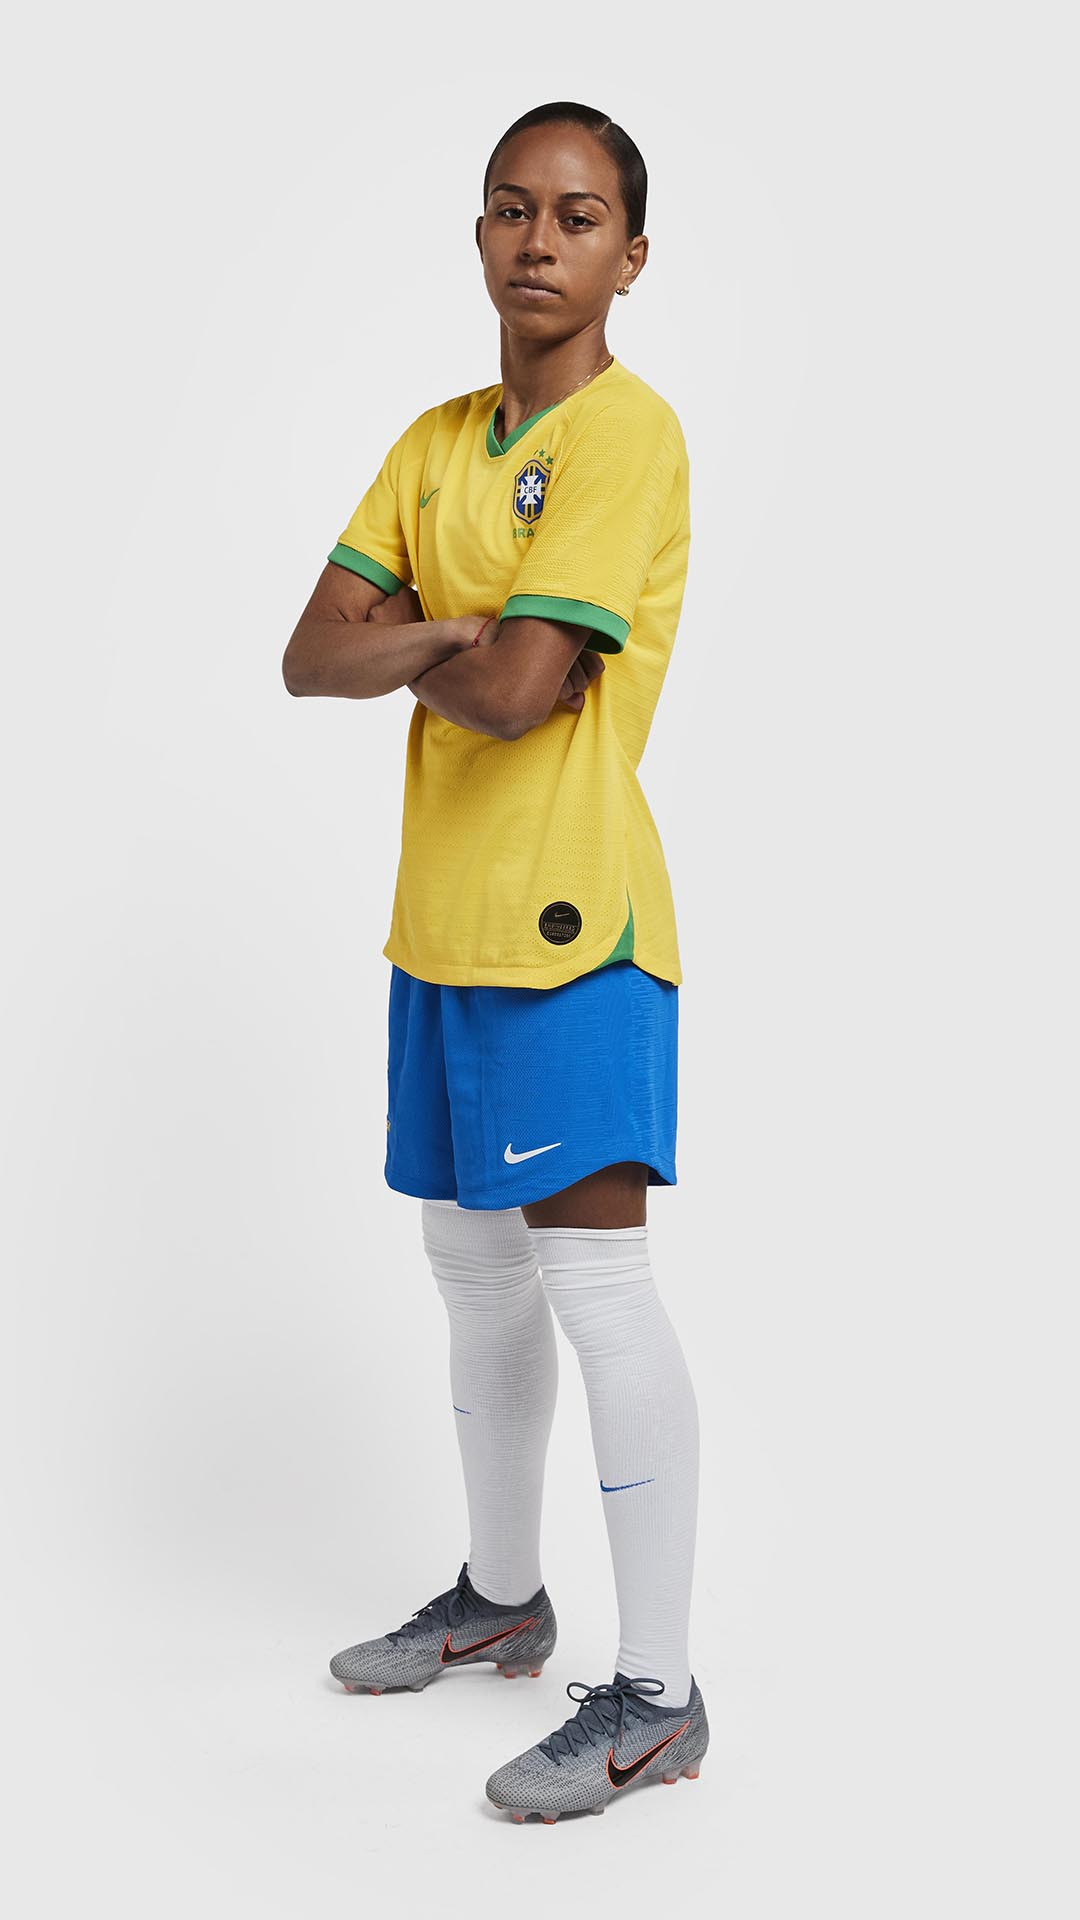 dd77558a859 The Brazil 2019 Women s World Cup Nike home and away kits will be on sale  at World Soccer Shop